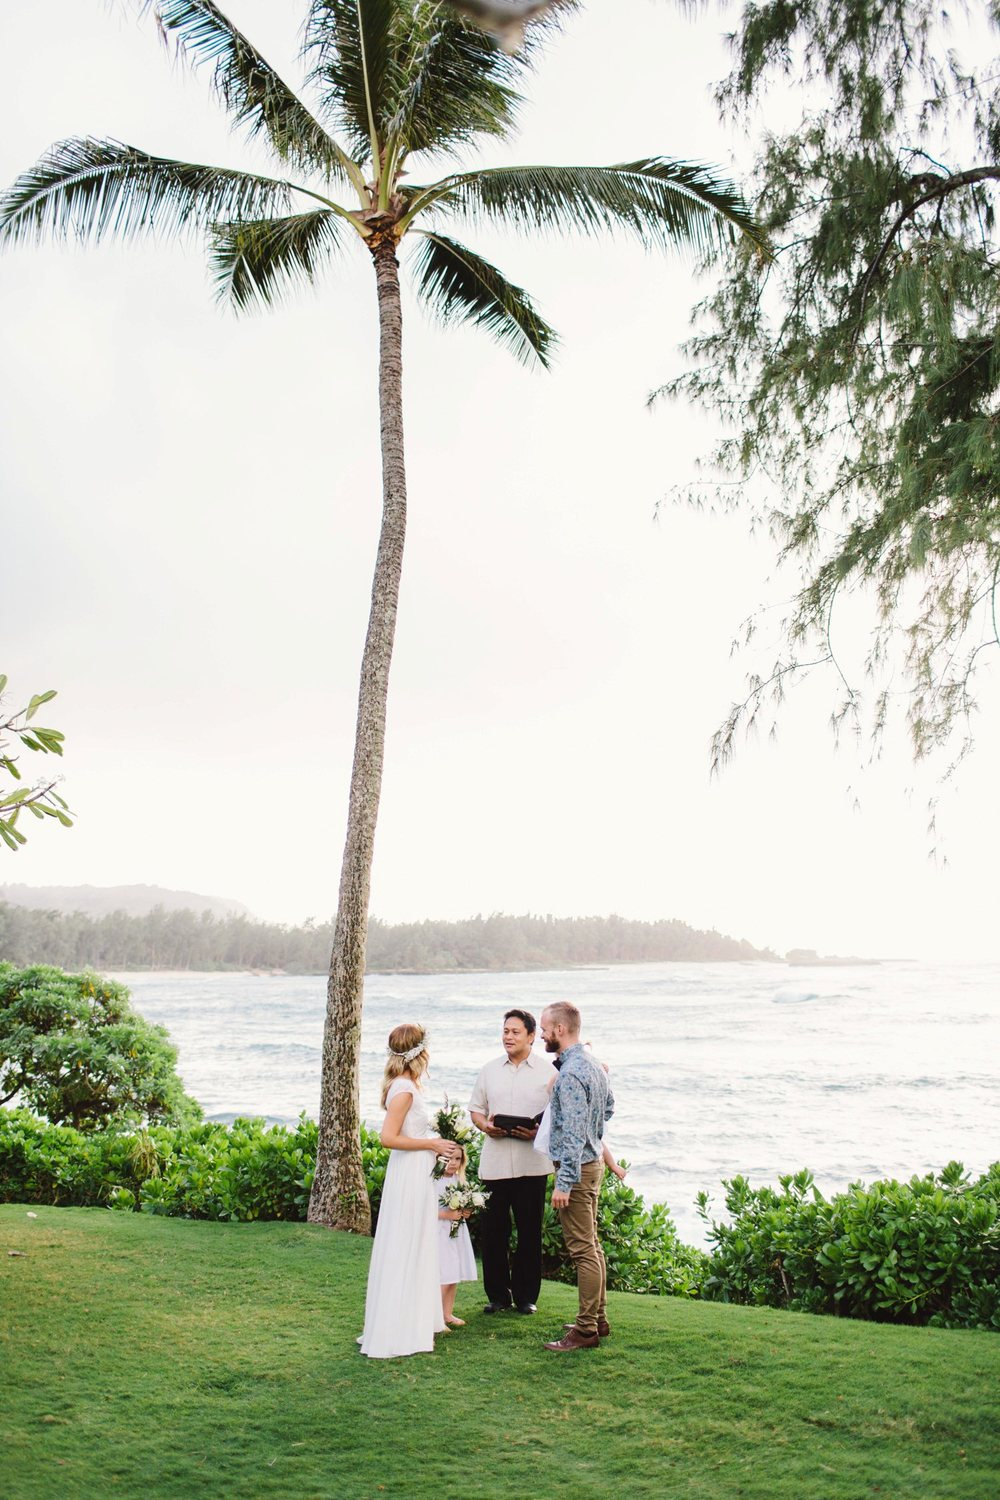 annika-pele-hawaii-elopement-002.jpg